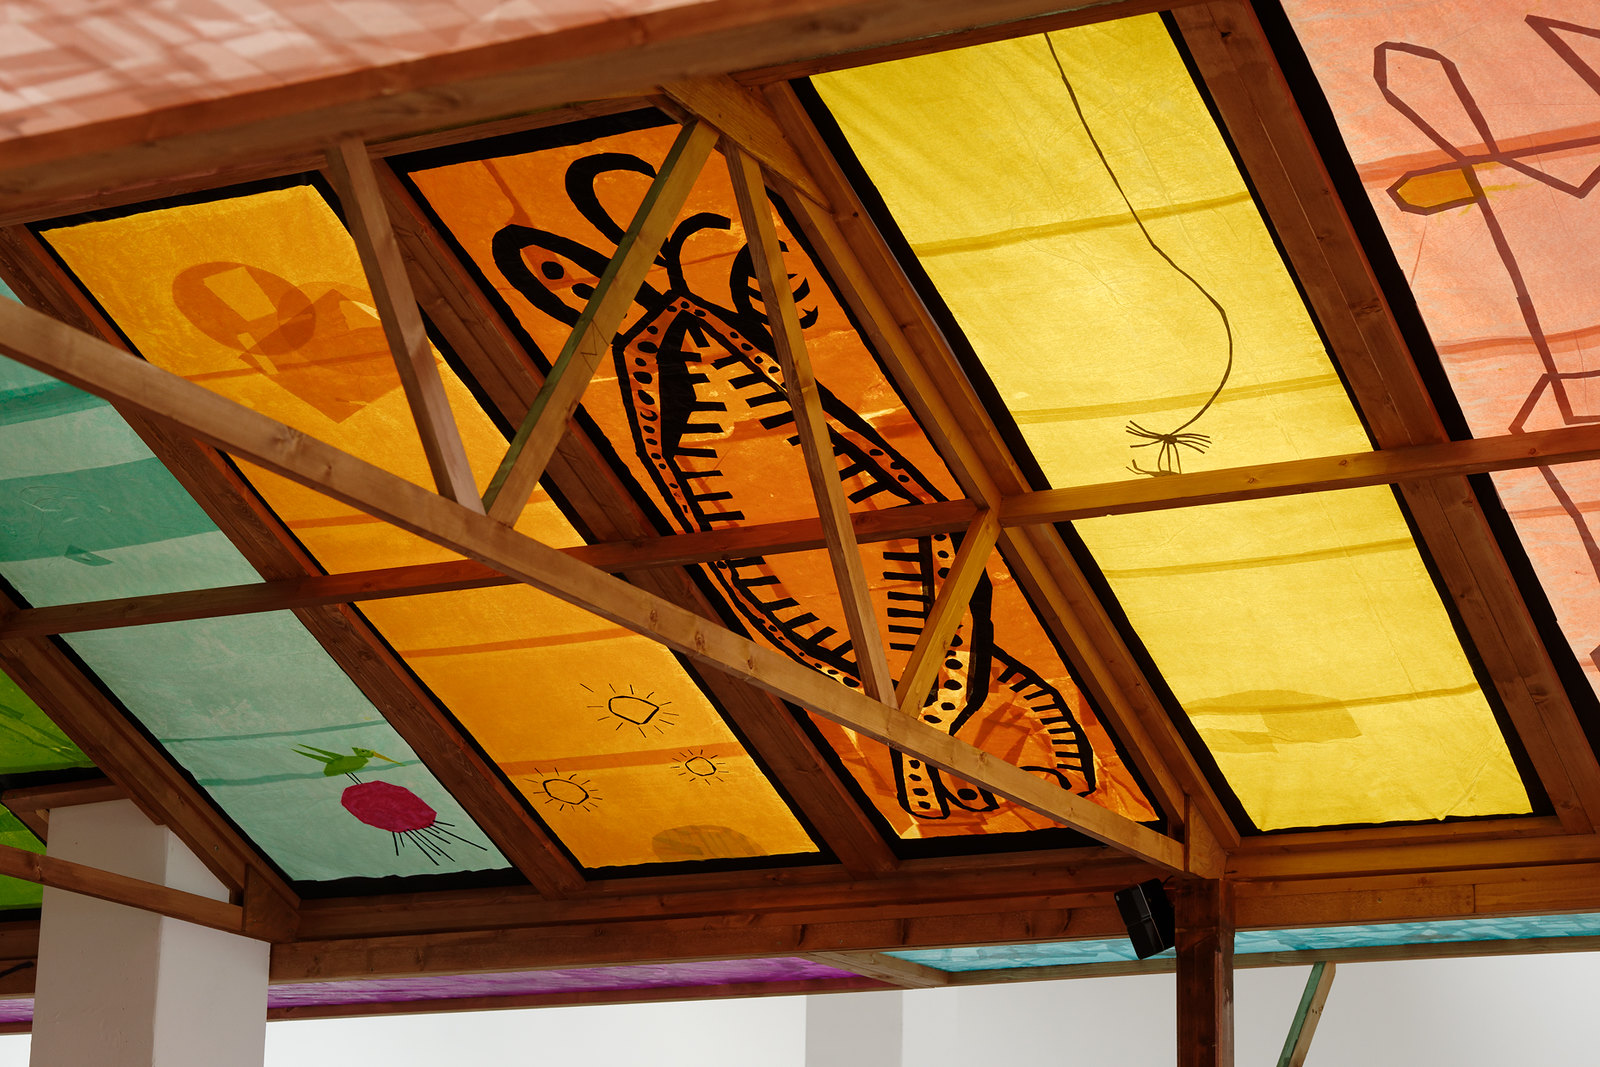 a view of some of the roof panels from inside the kiosk. One seems to be a vagina dentata with various small suns and moons circling the mouth. On the panel adjacent to this a spider has caught its prey. To the left of the vagina dentata are three delicate suns, and then to the left of this a bird with a long beak and wings rasied stands upon a pink planet floating in a blue space.